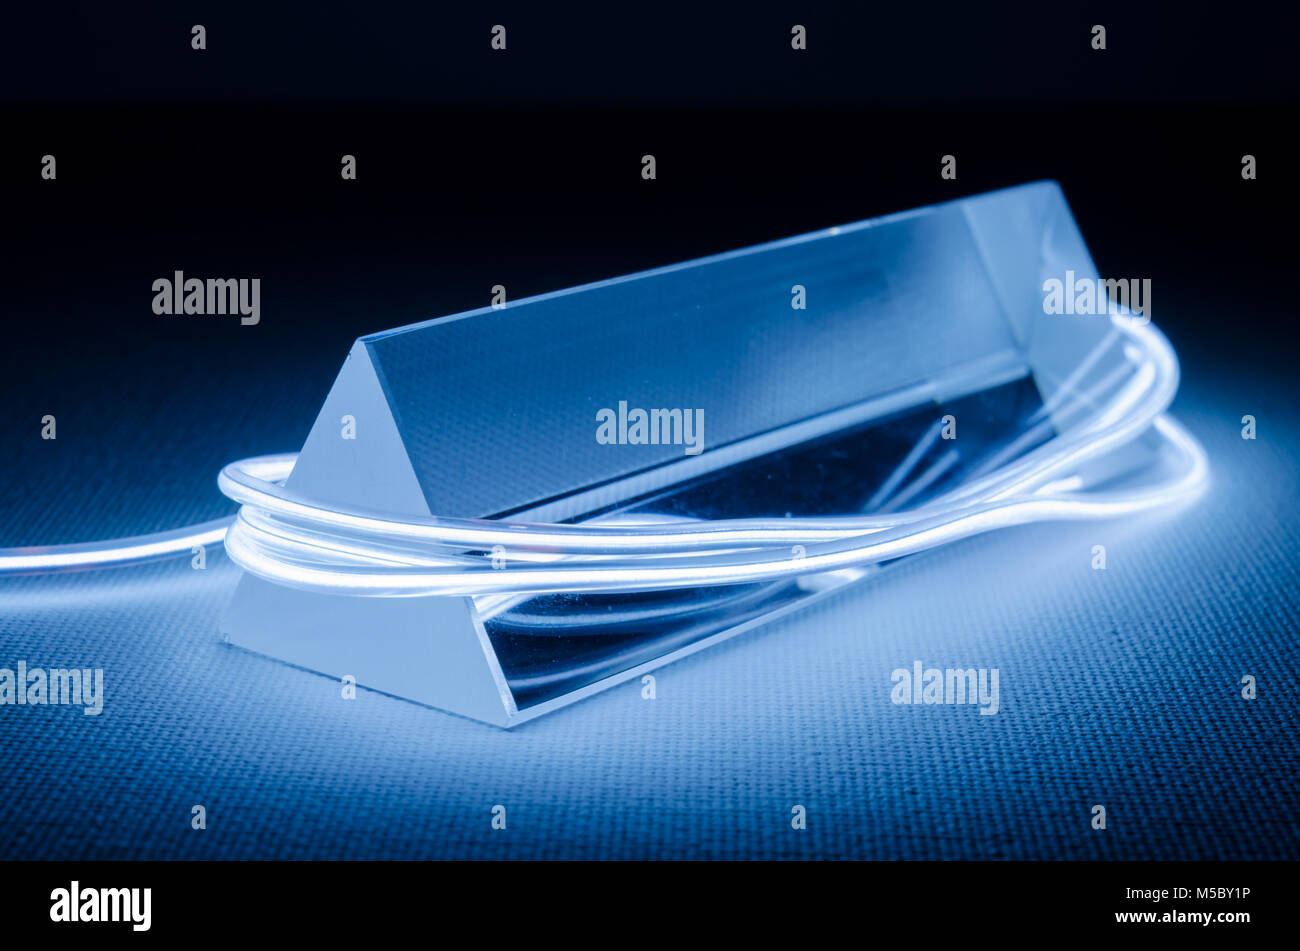 A Studio Still-life Photograph of a Triangular Glass Prism with Abstract Neon Lighting in Blue-Grey - Stock Image